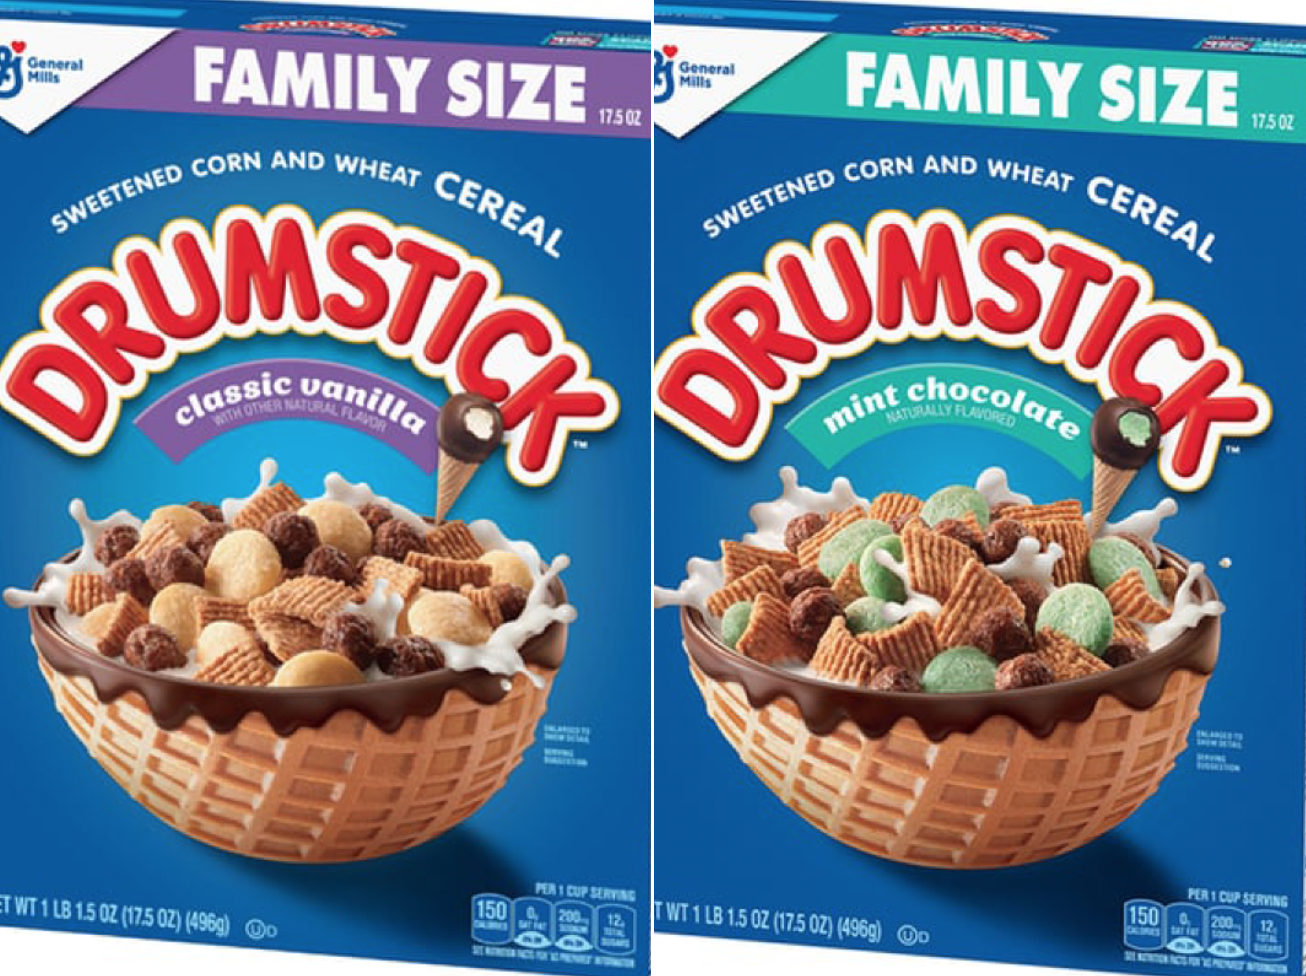 Drumstick Ice Cream Cones Are Now a Cereal